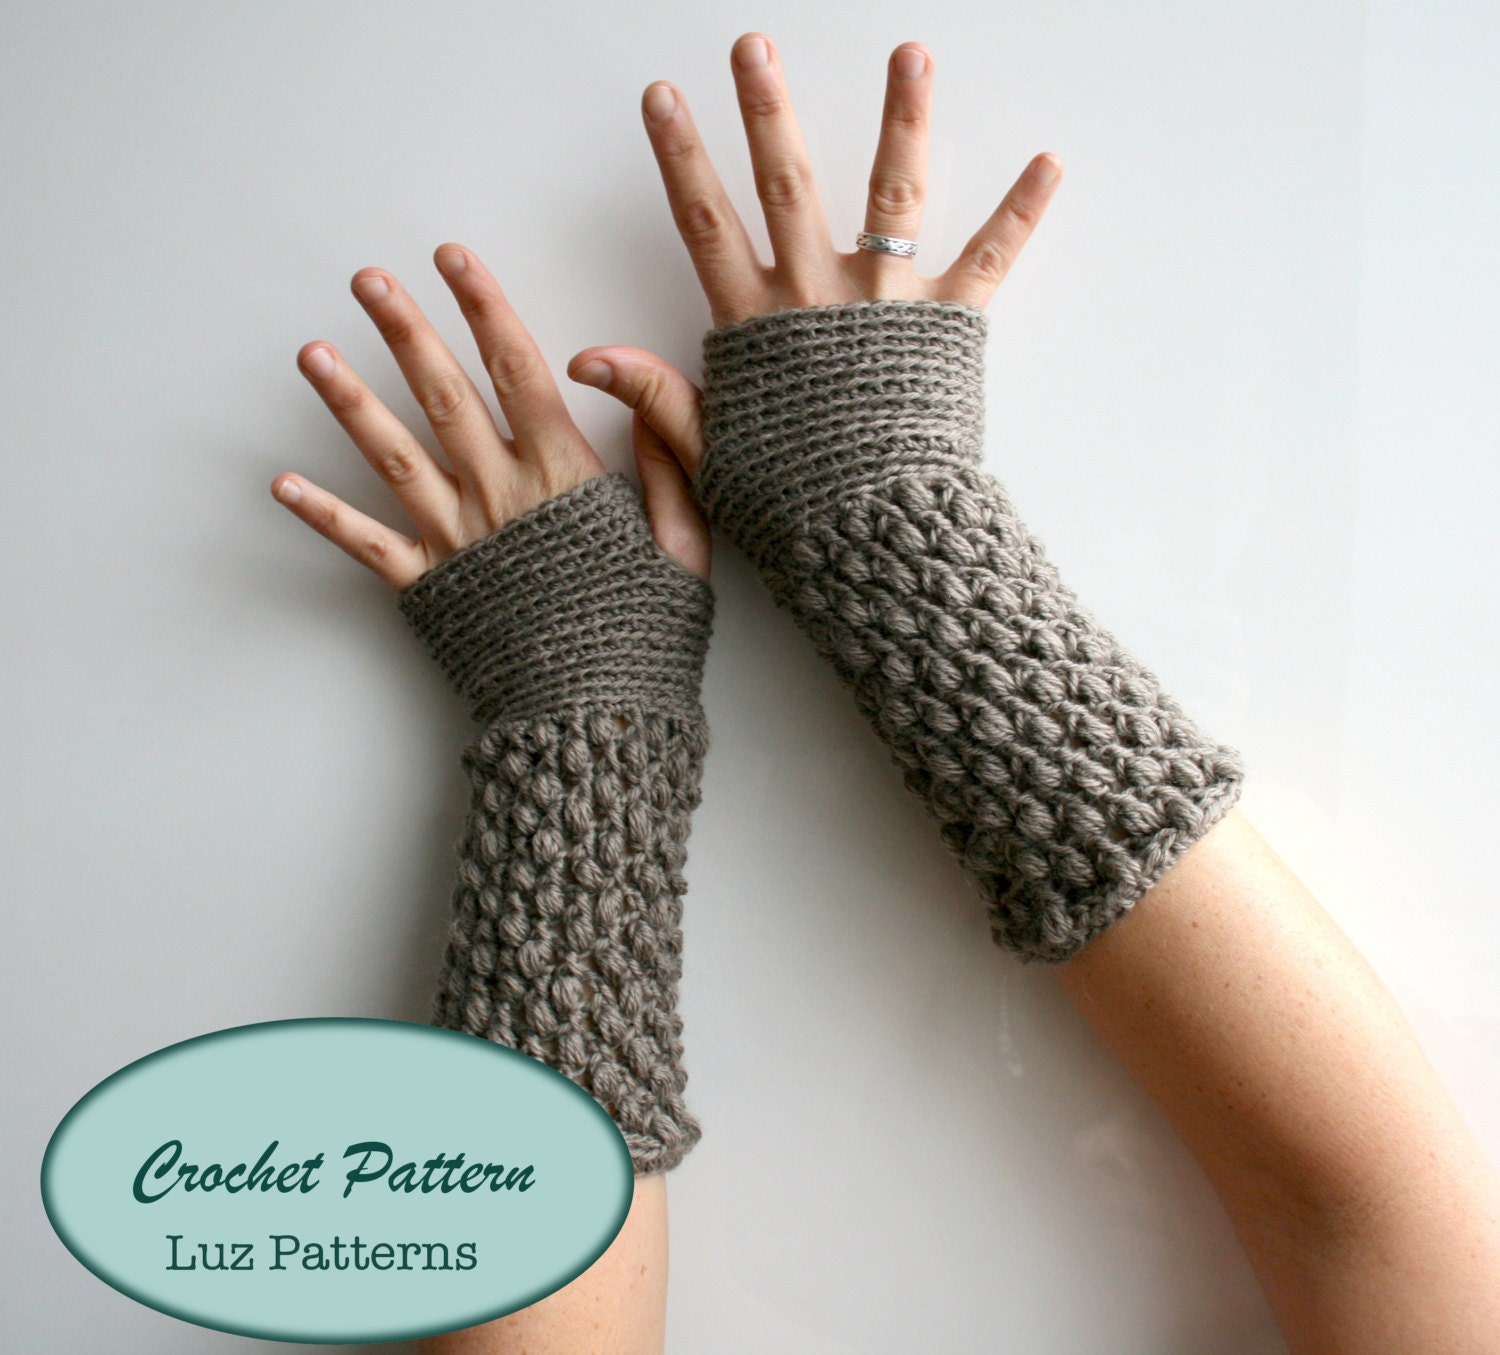 Crochet Patterns Girl And Women Fingerless Glove Pattern Etsy